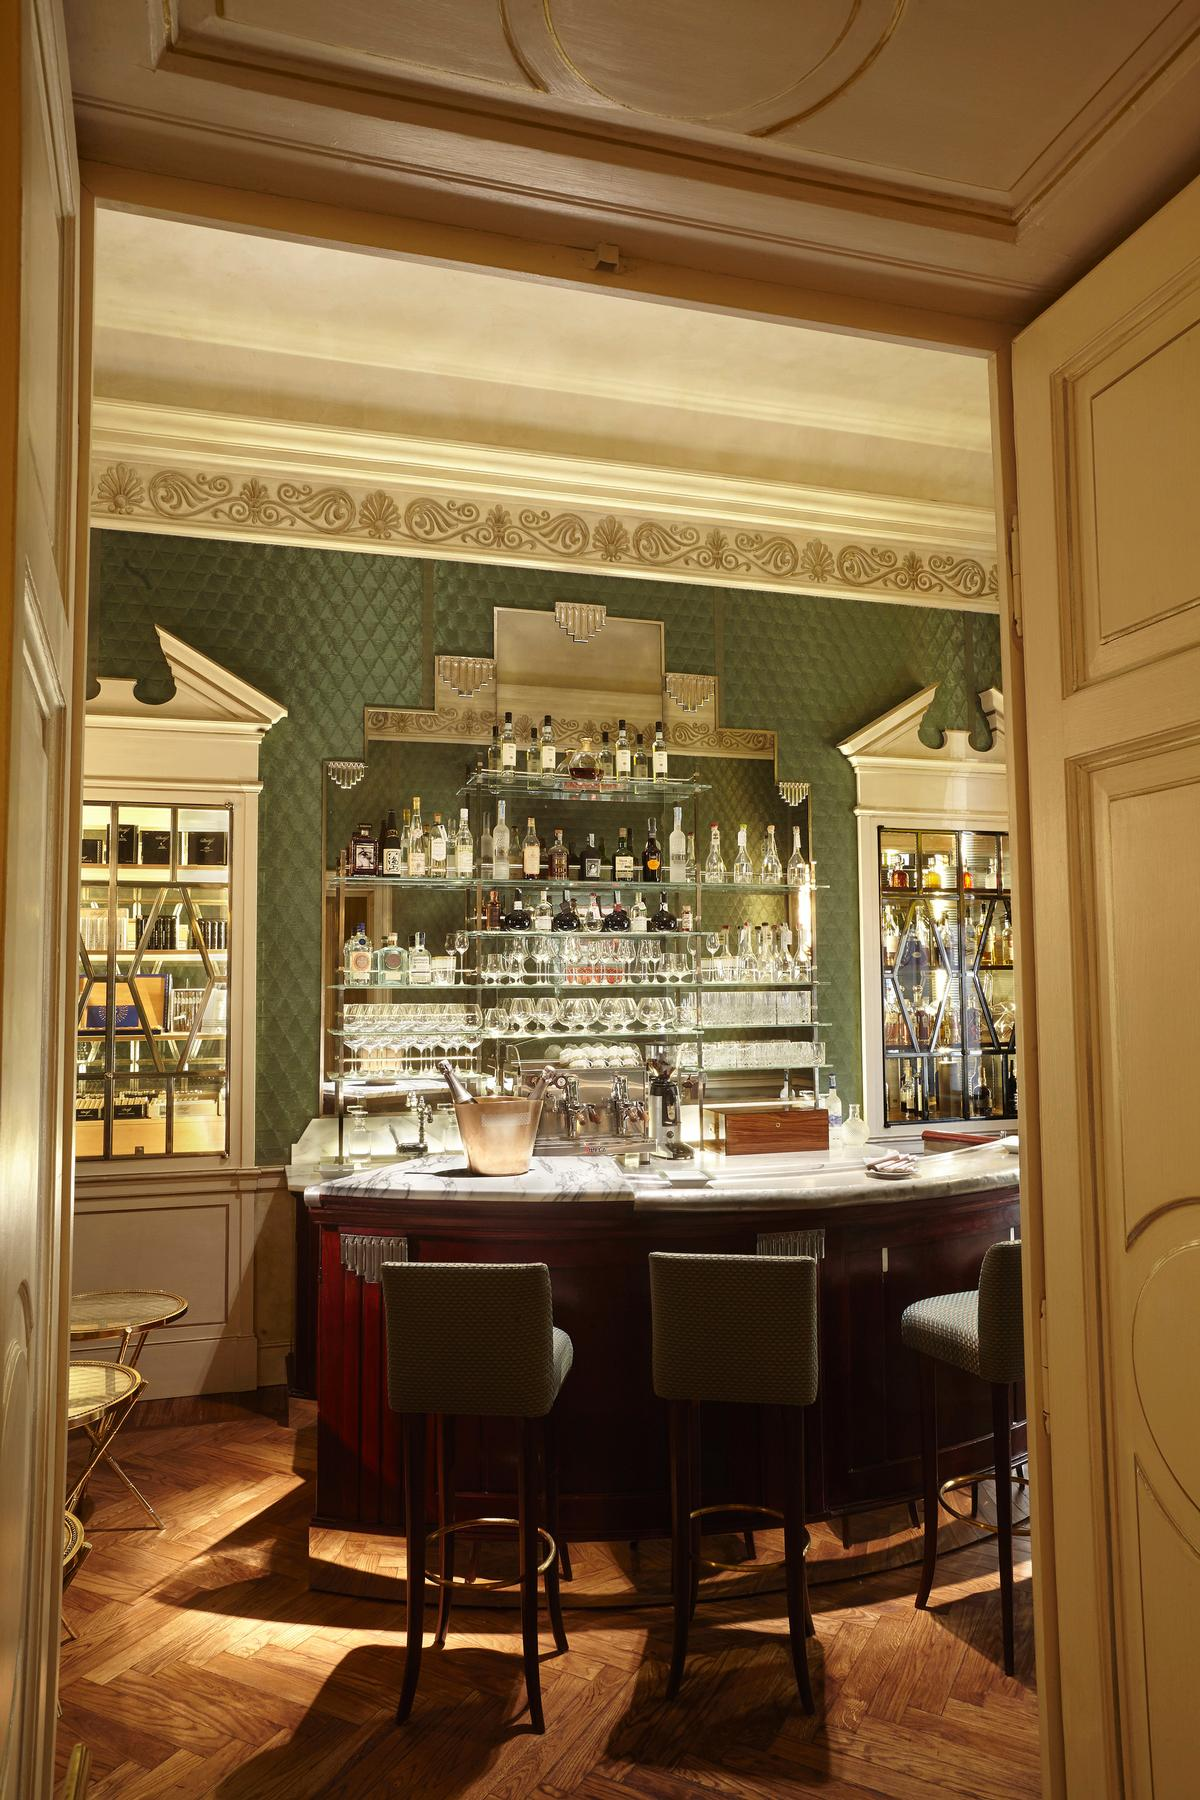 The site features a restaurant, café, patisserie, chocolaterie, wine bar and private lounge / Andrea Passuello